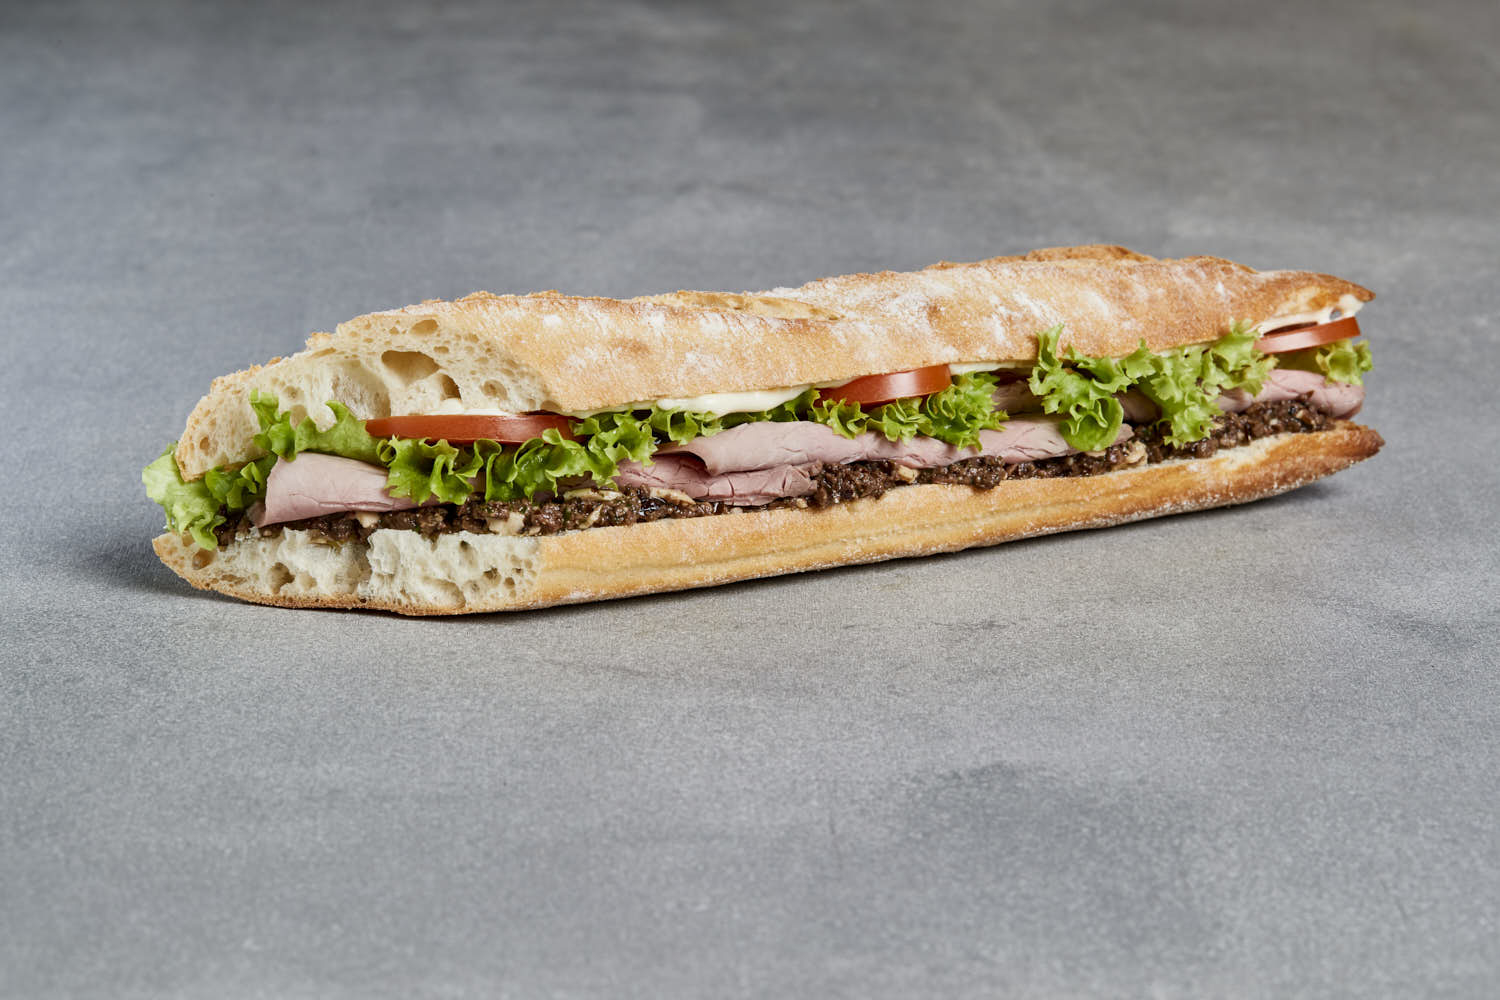 packshot of sandwich on a grey concrete background